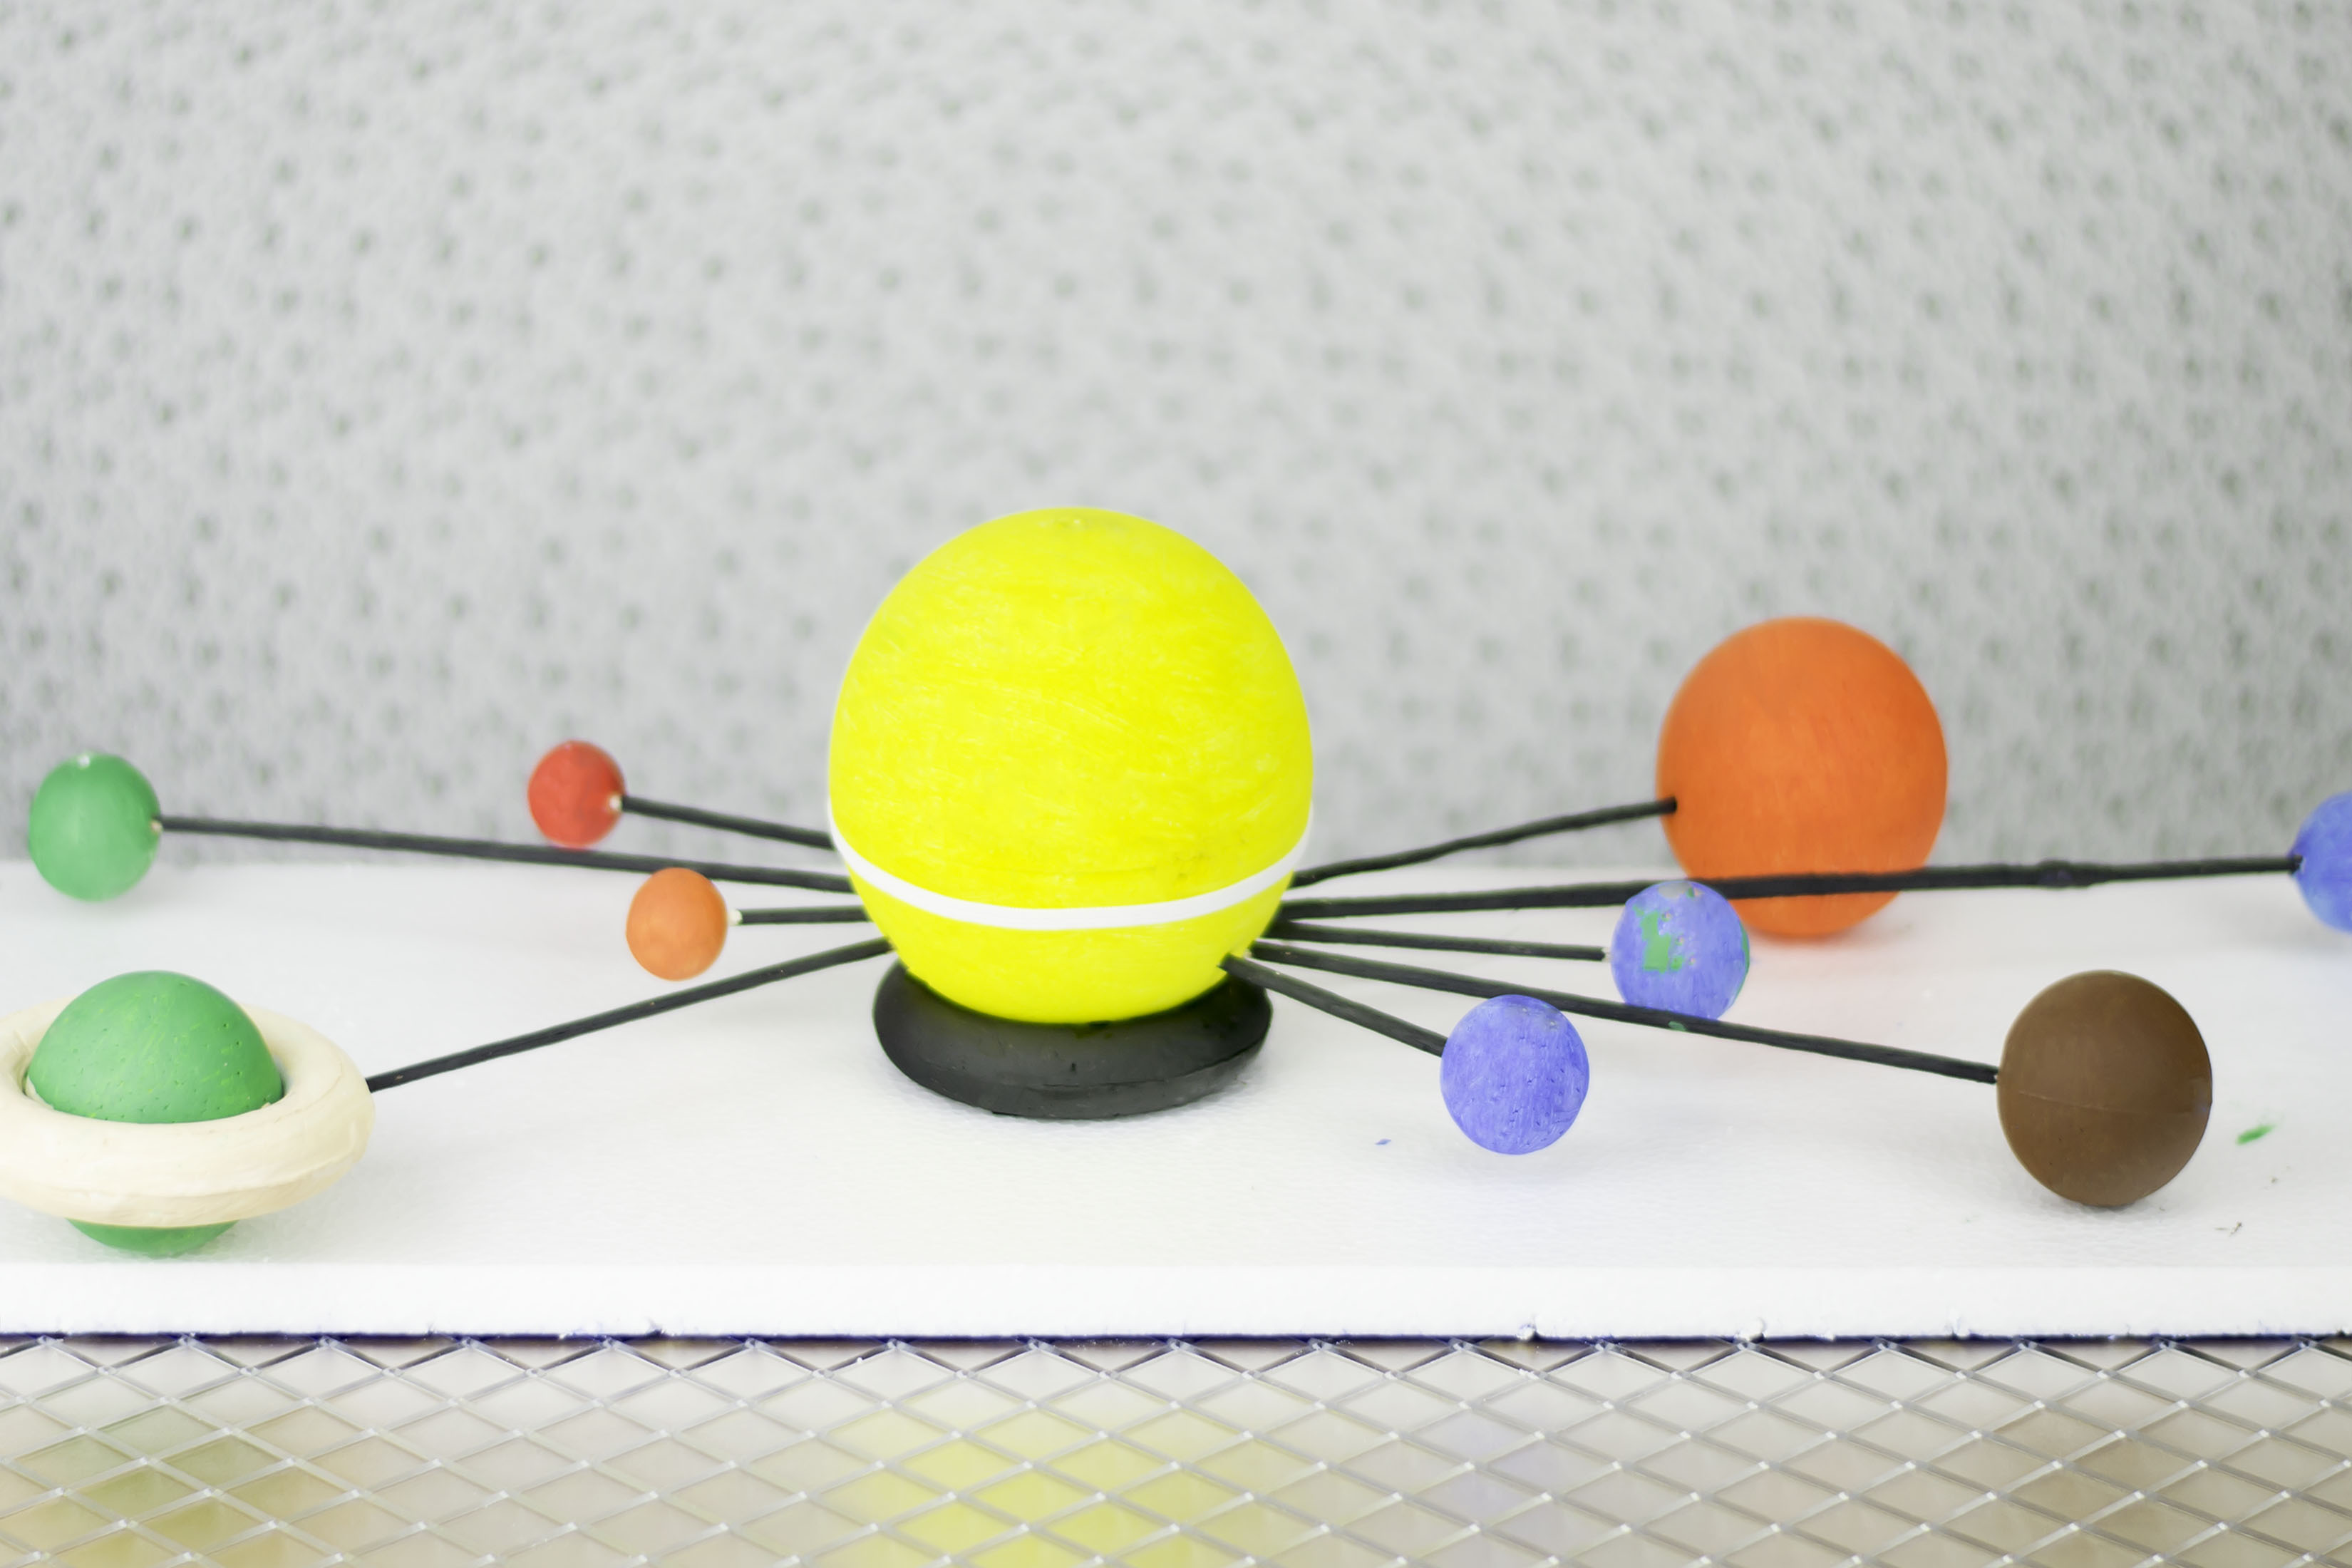 How To Make A Solar System Model At Home For School Project